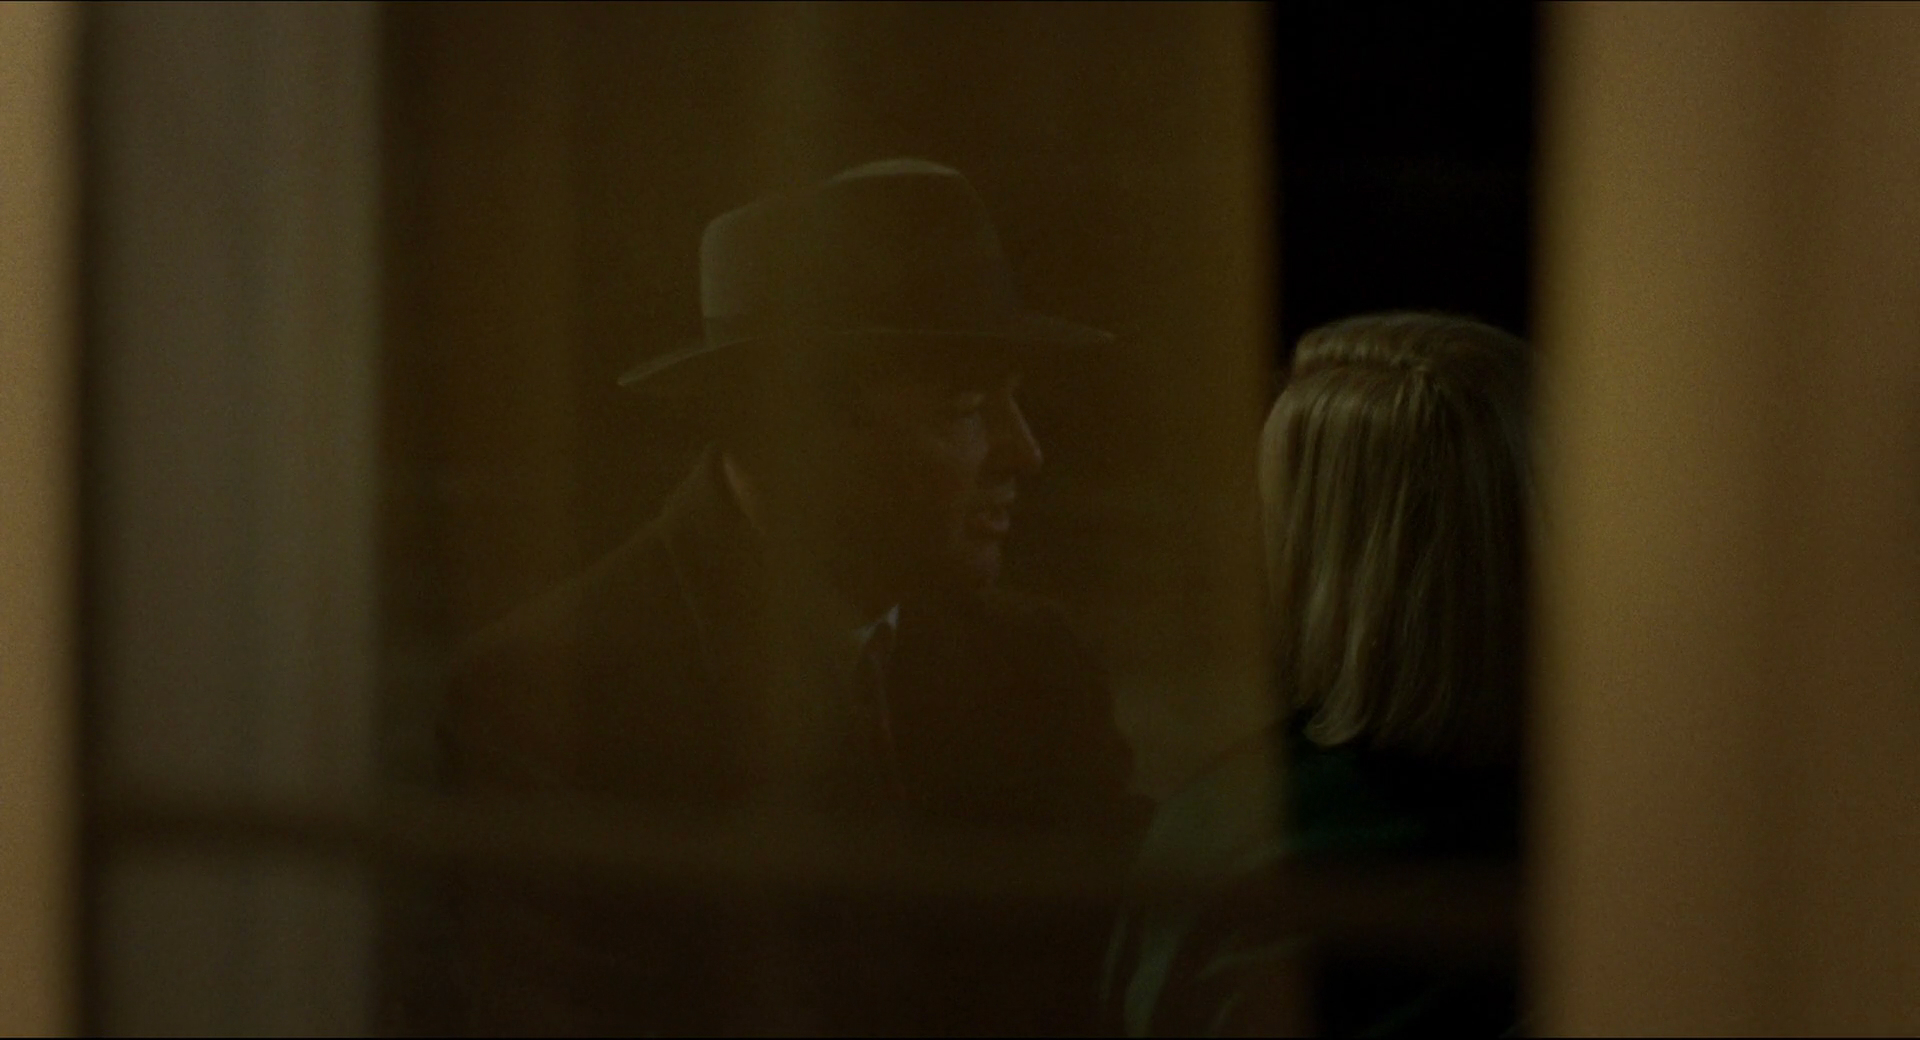 We observe Carol and Harge from Therese's point-of-view. The foreground helps sell the subjectivity.